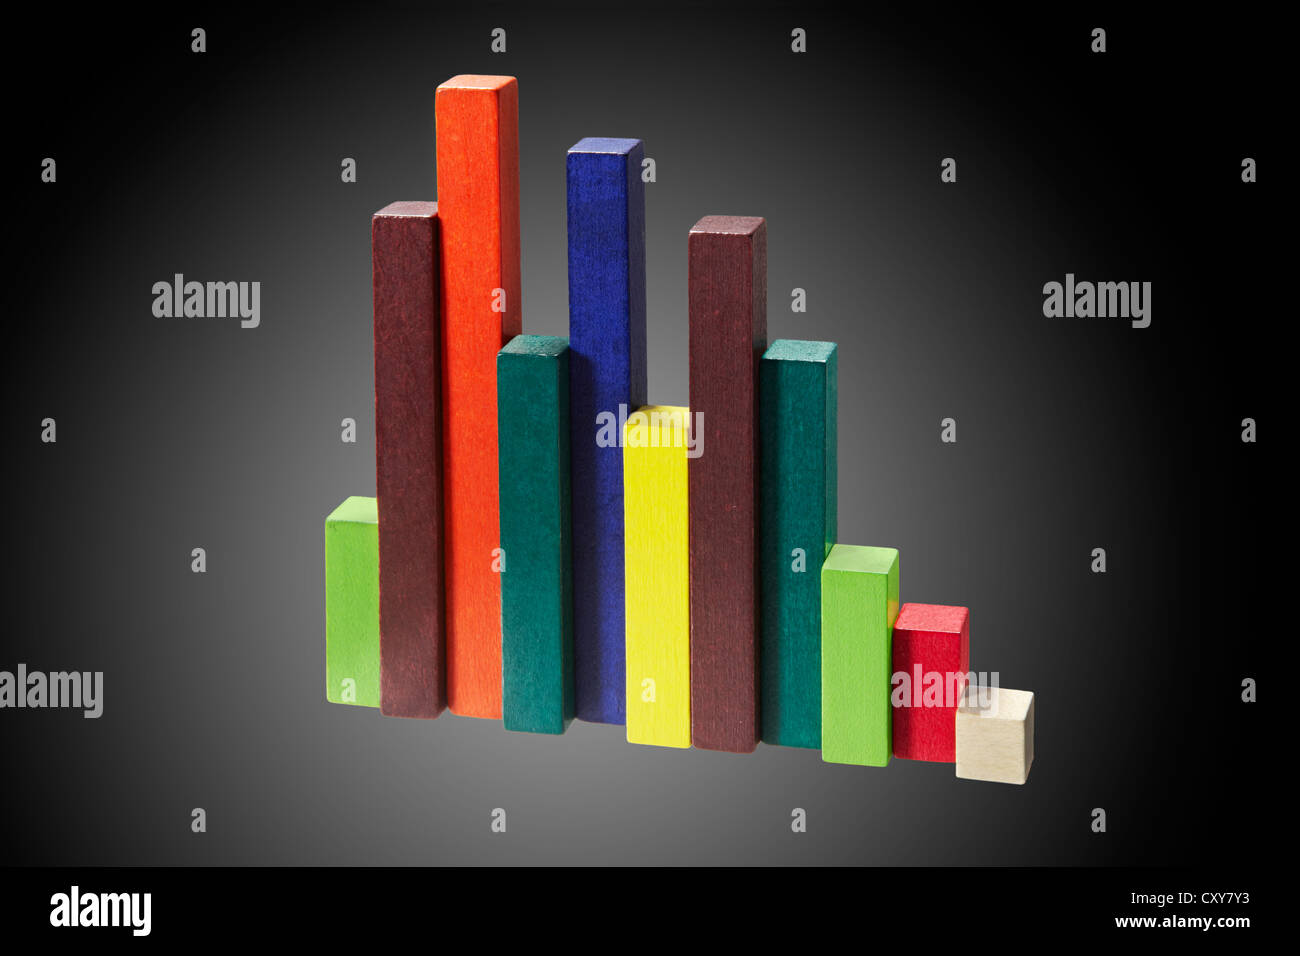 Colourful Wooden Blocks - Stock Image